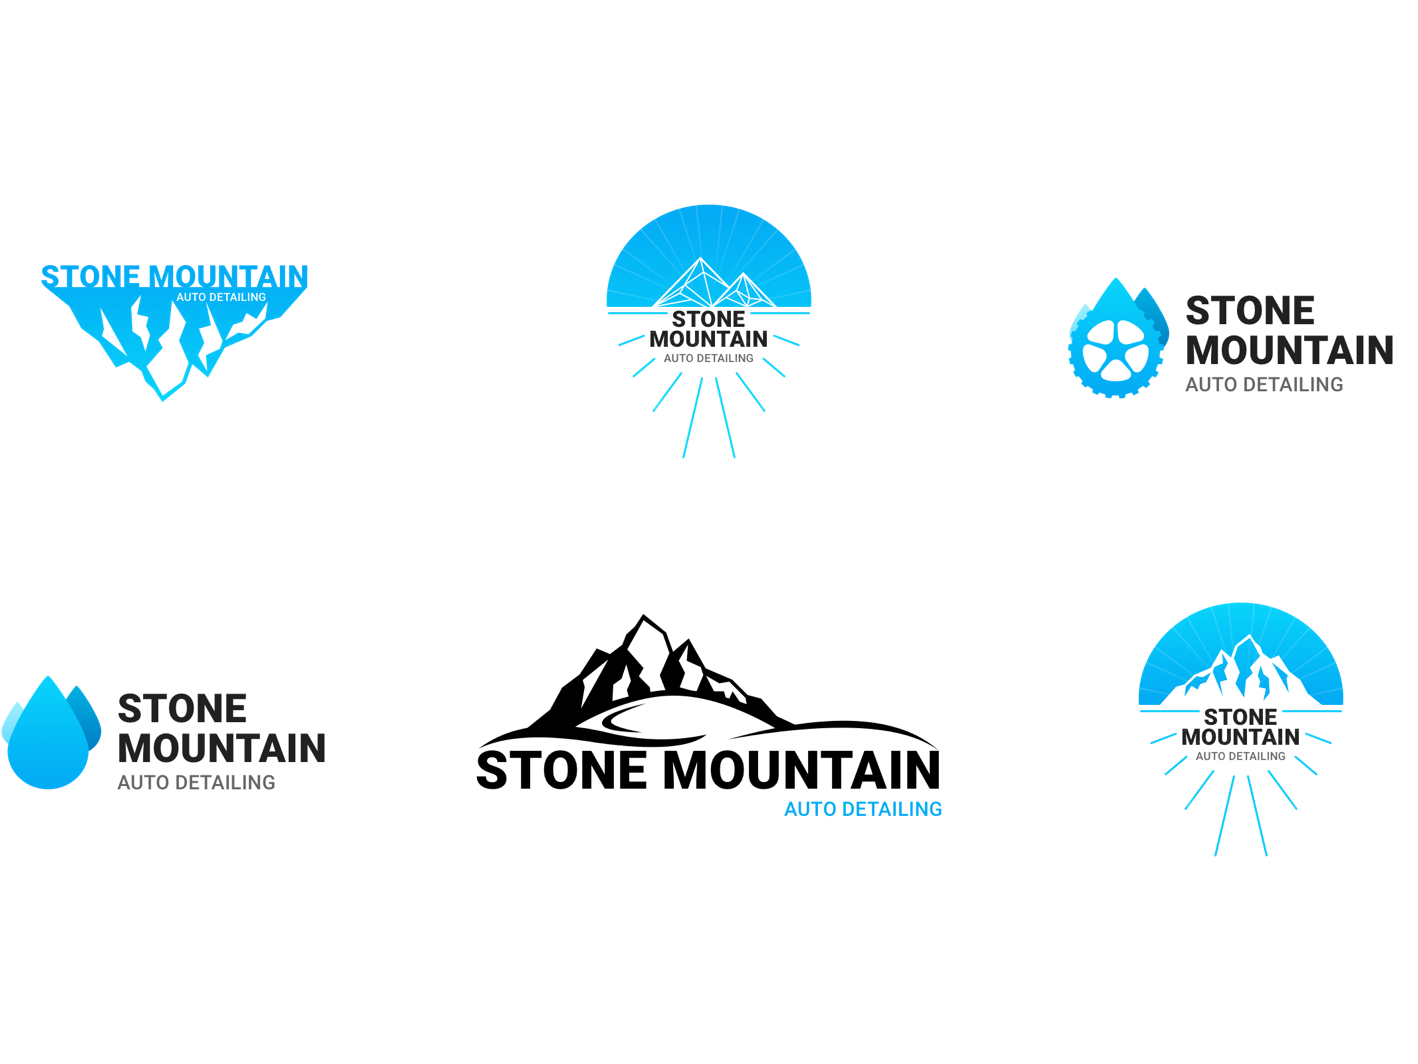 Logo Design drops mobile logo wash car detailing auto mountain stone